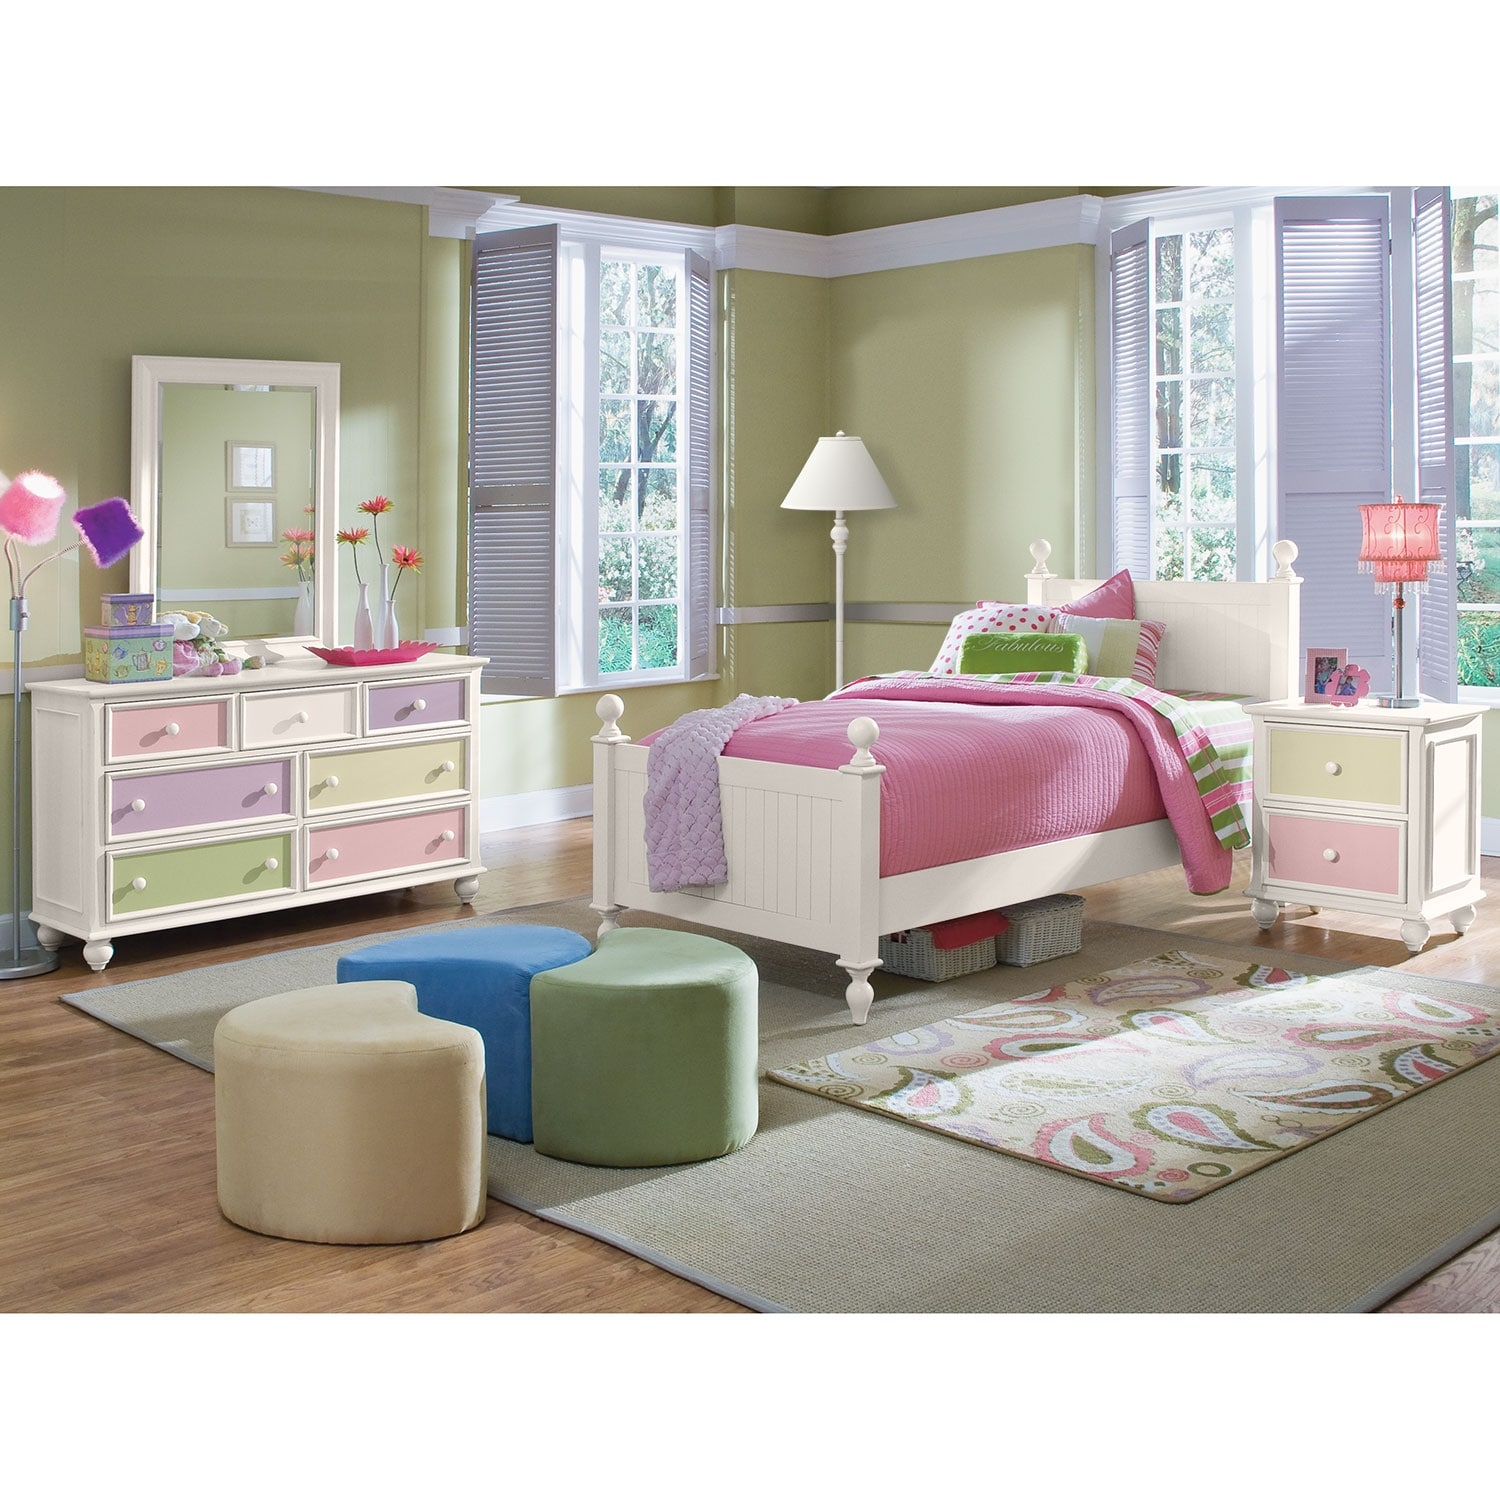 colorworks 6-piece twin bedroom set - white | value city furniture